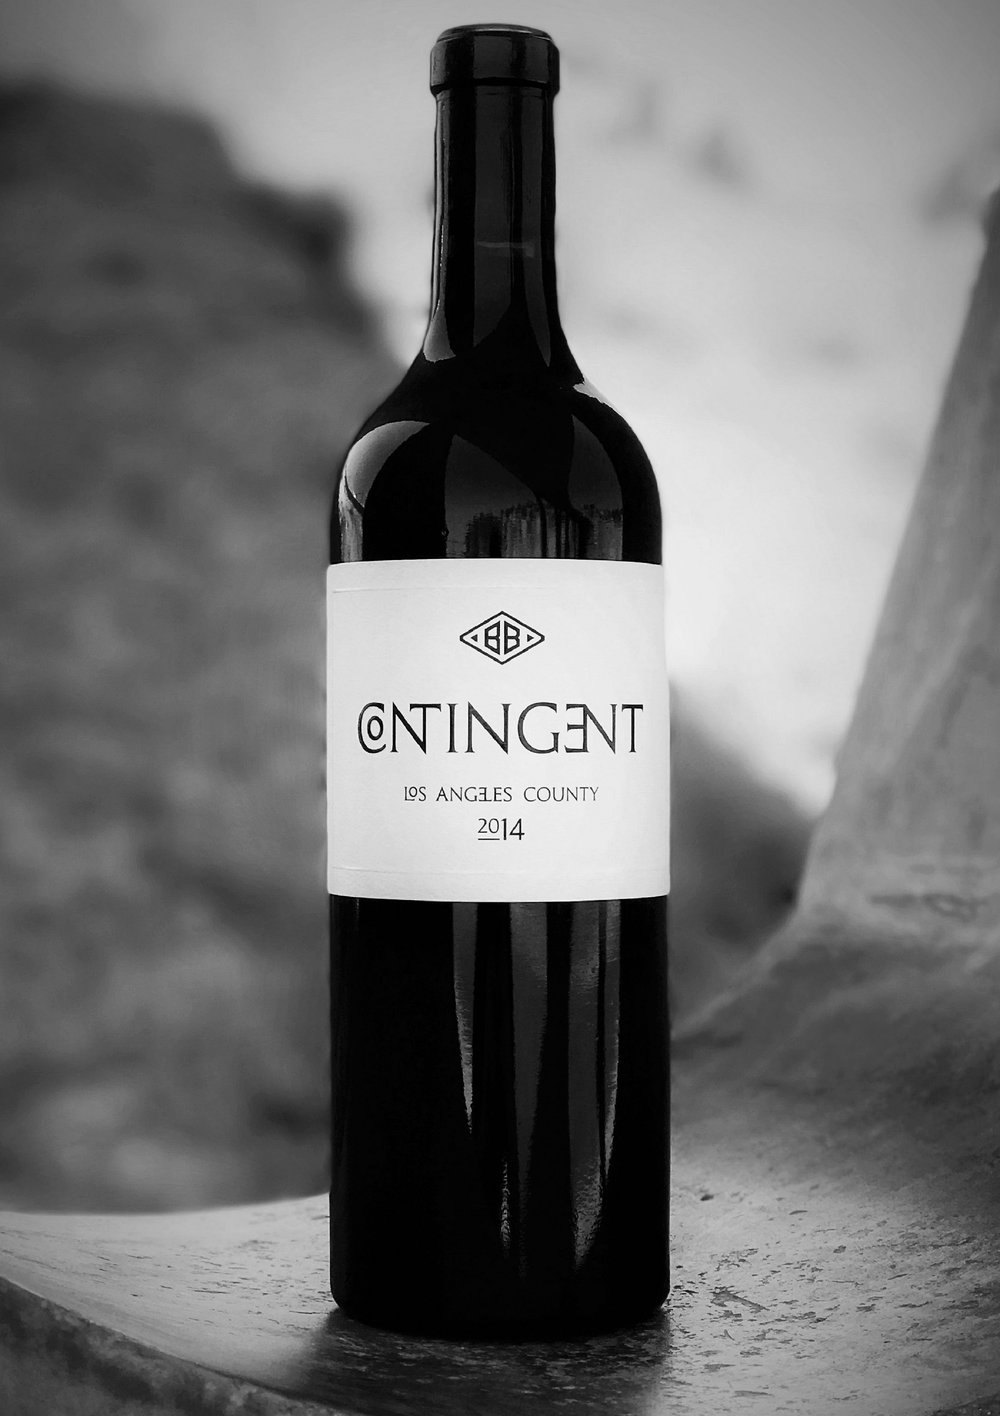 2014 Contingent Bottle Shot Byron Blatty Wines.JPG